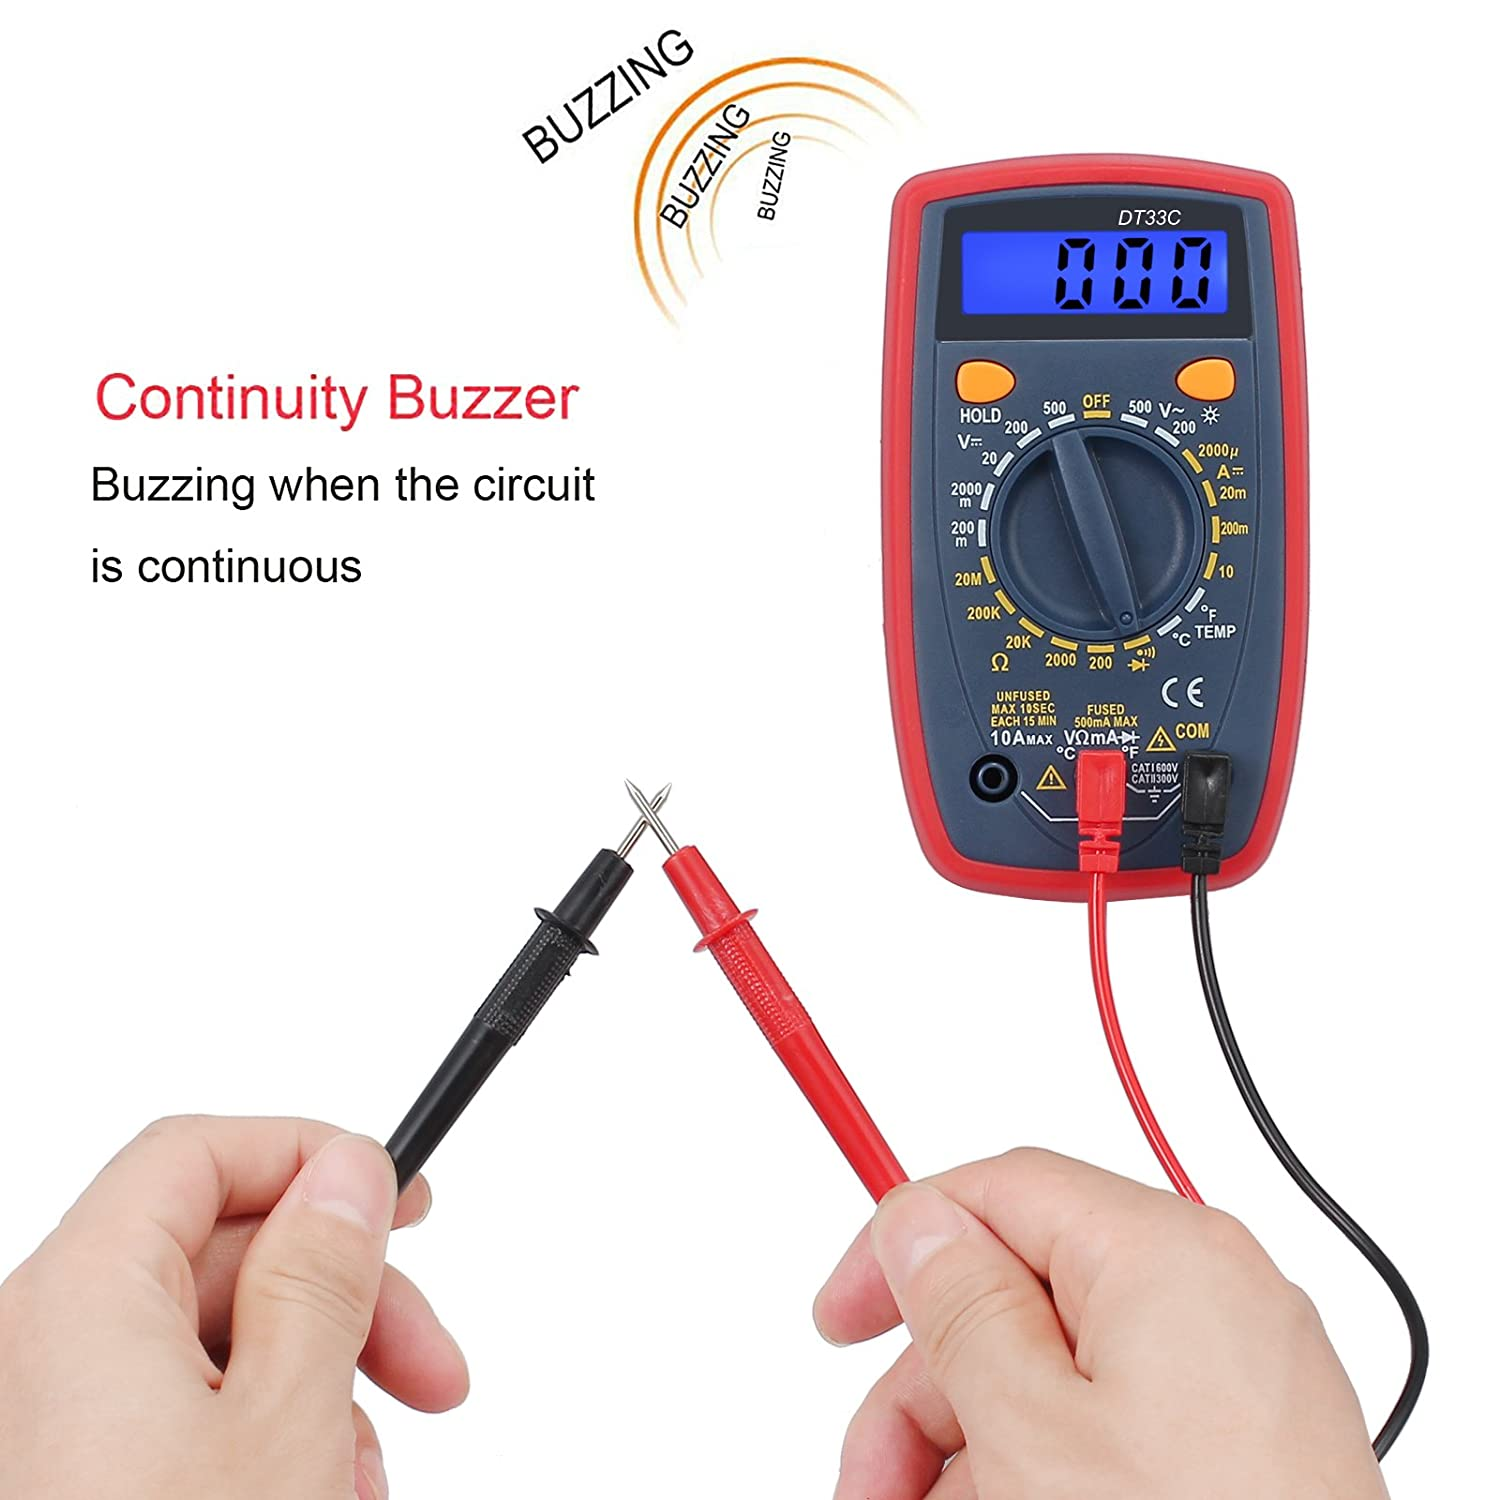 Proster Digital Multimeter 1999 Portable Multi Tester With Test Lcd Ac Dc Voltmeter Ammeter Ohm Circuit Checker Leads Mini Ohmmeter Backlight